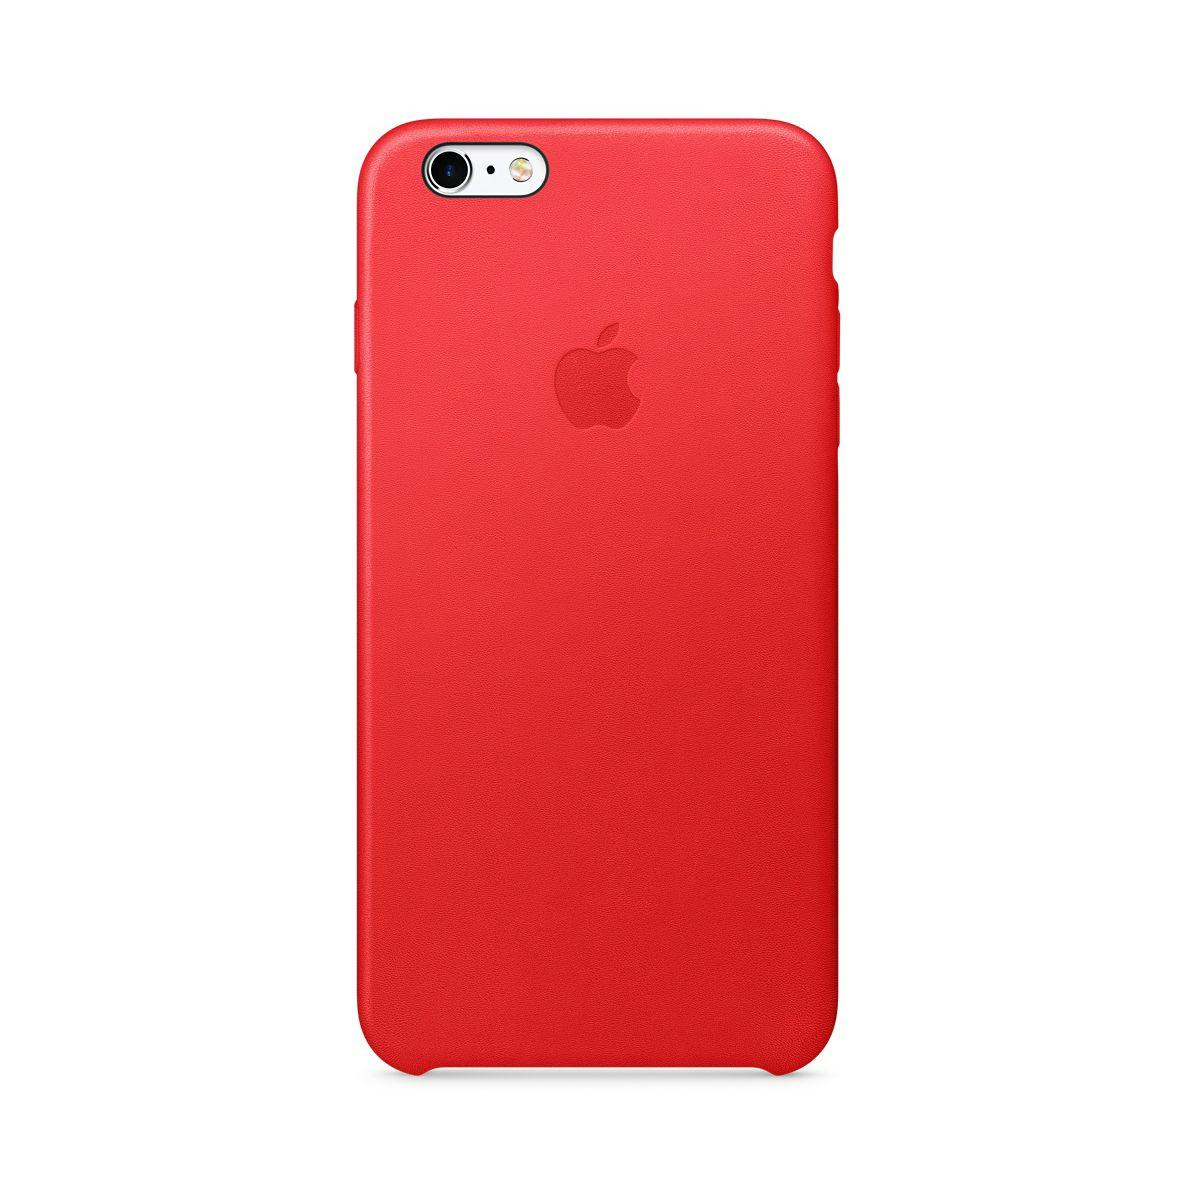 Coque apple iphone 6/6s plus cuir (product) red (photo)